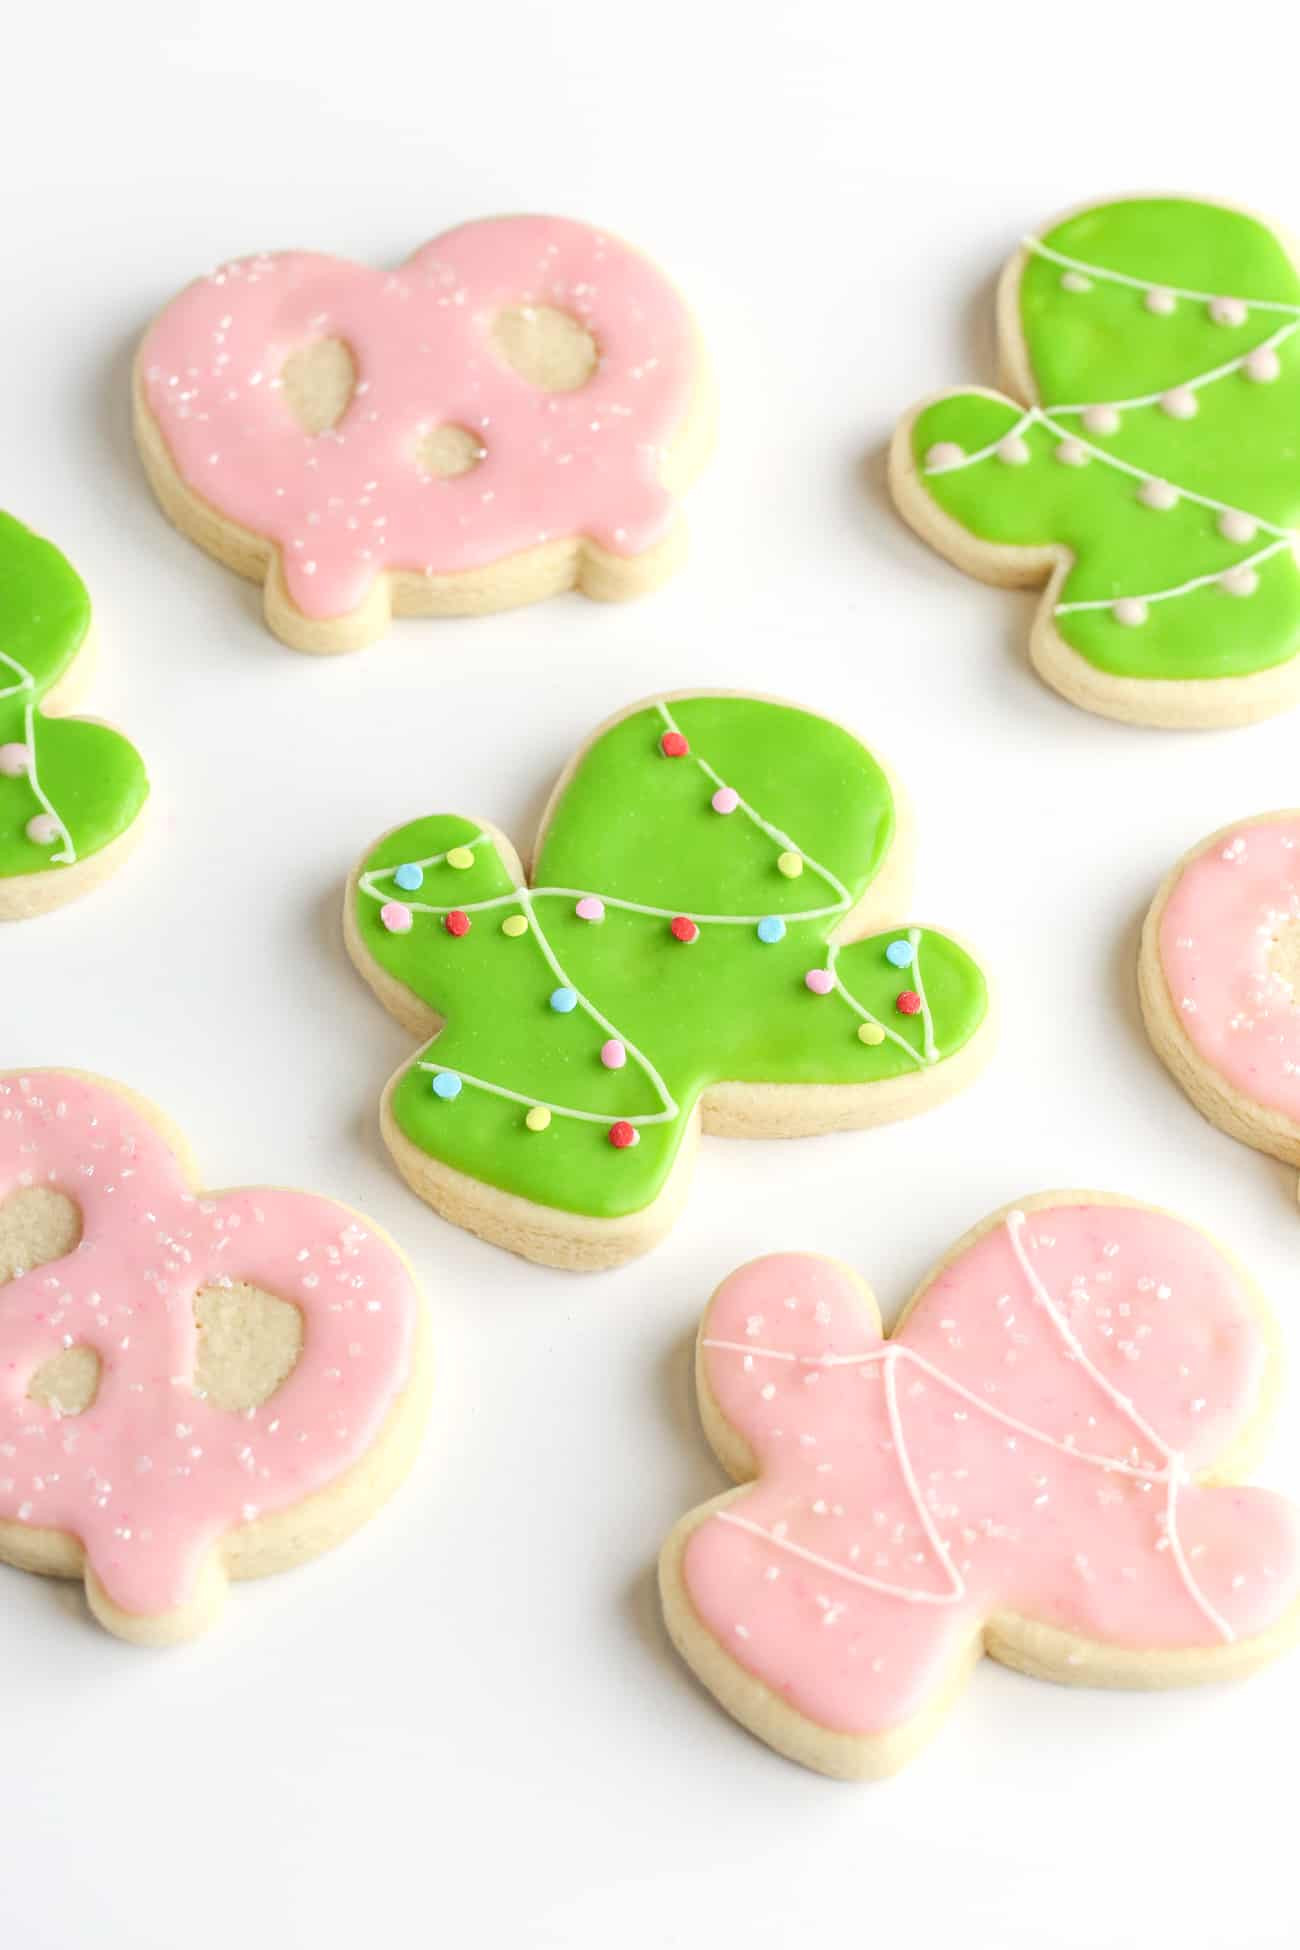 Icing Recipe For Sugar Cookies  Easy Sugar Cookie Icing Recipe Without Eggs